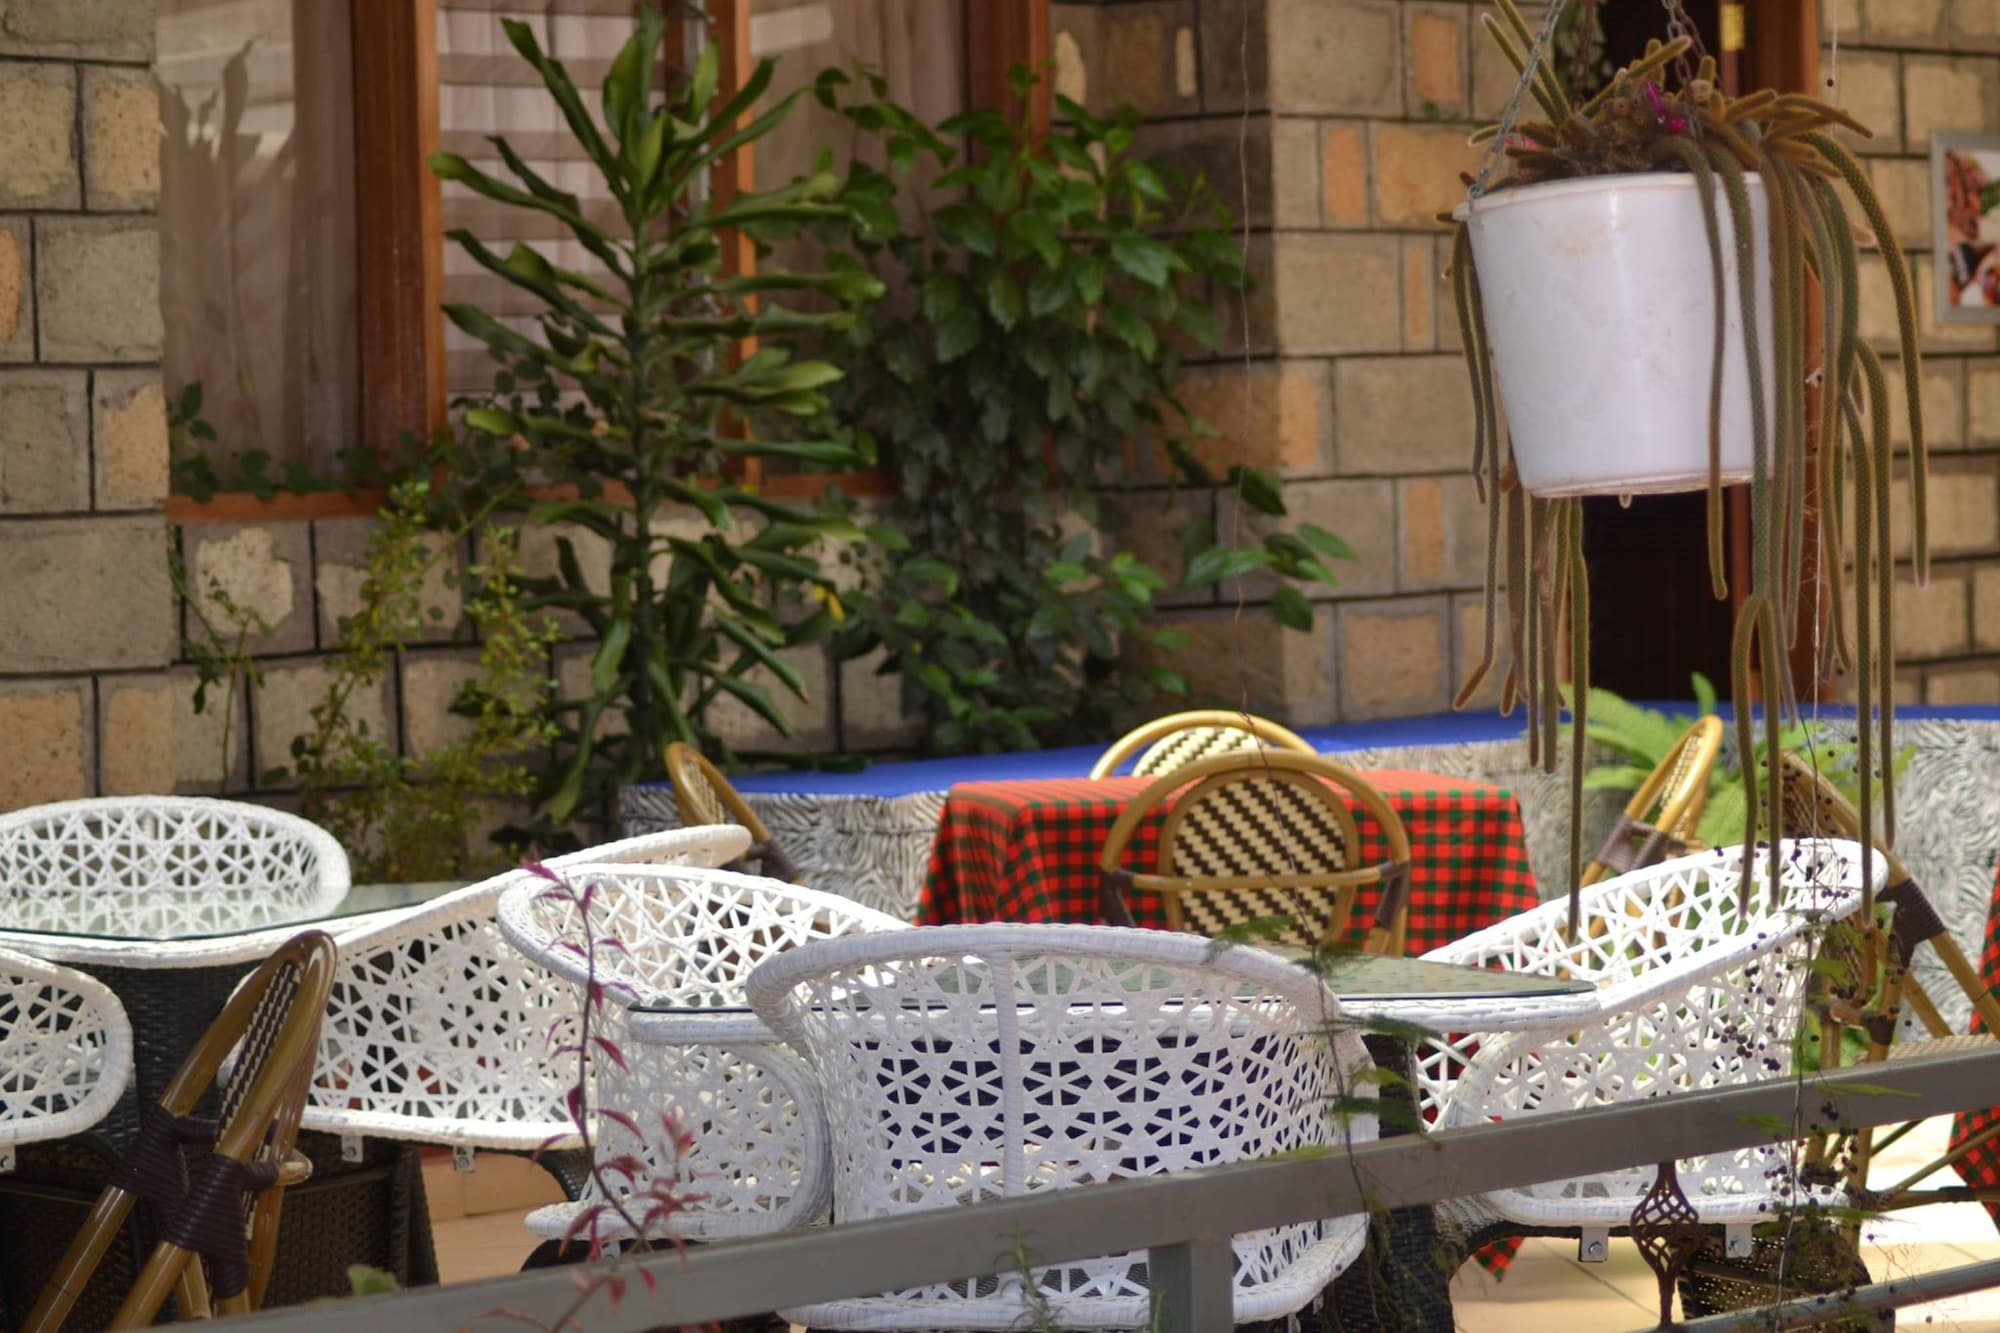 Falls Hippo Point Hotel, Laikipia West